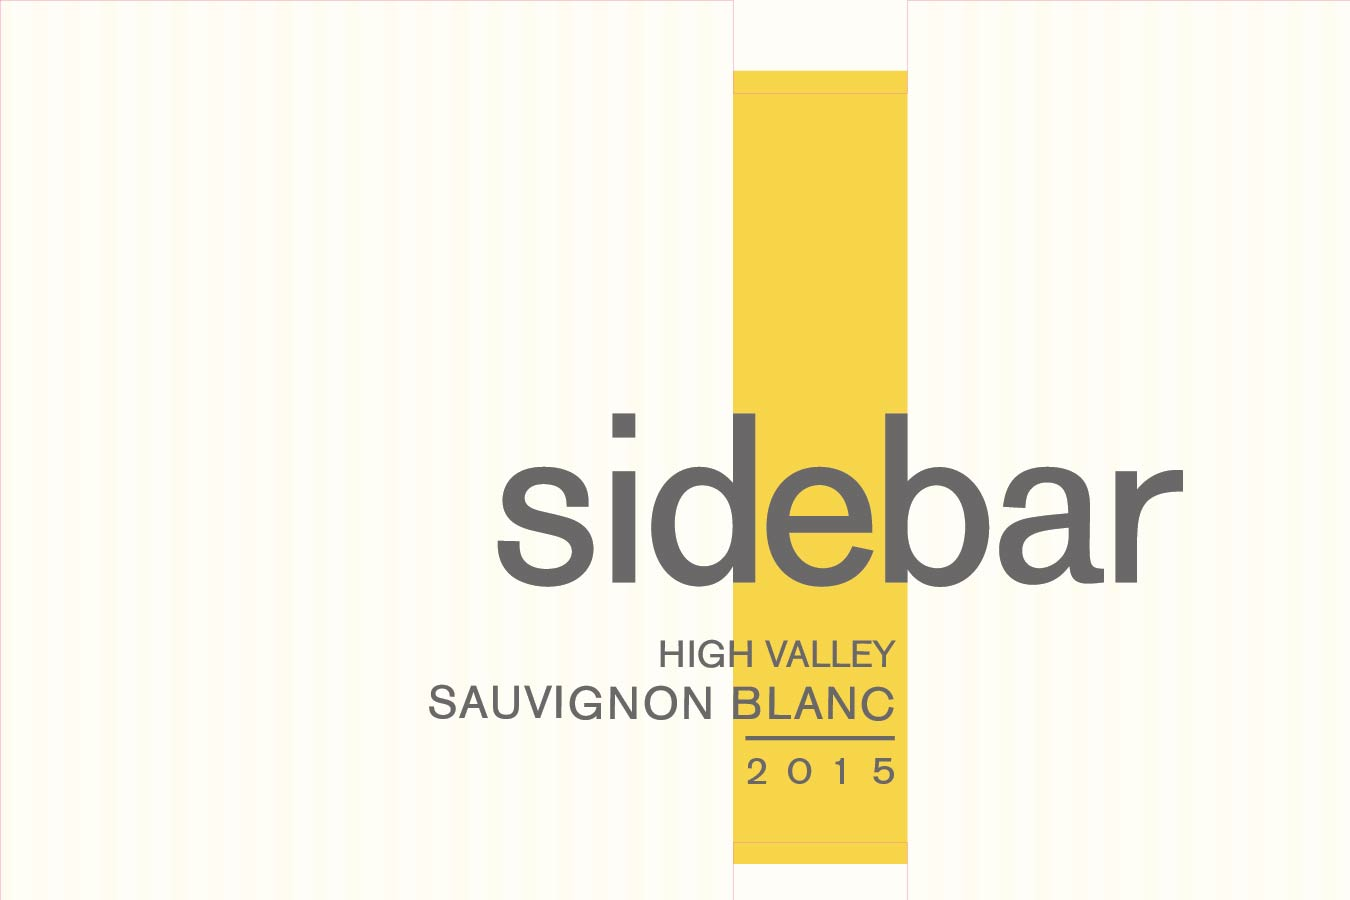 Sidebar Sauvignon Blanc High Valley